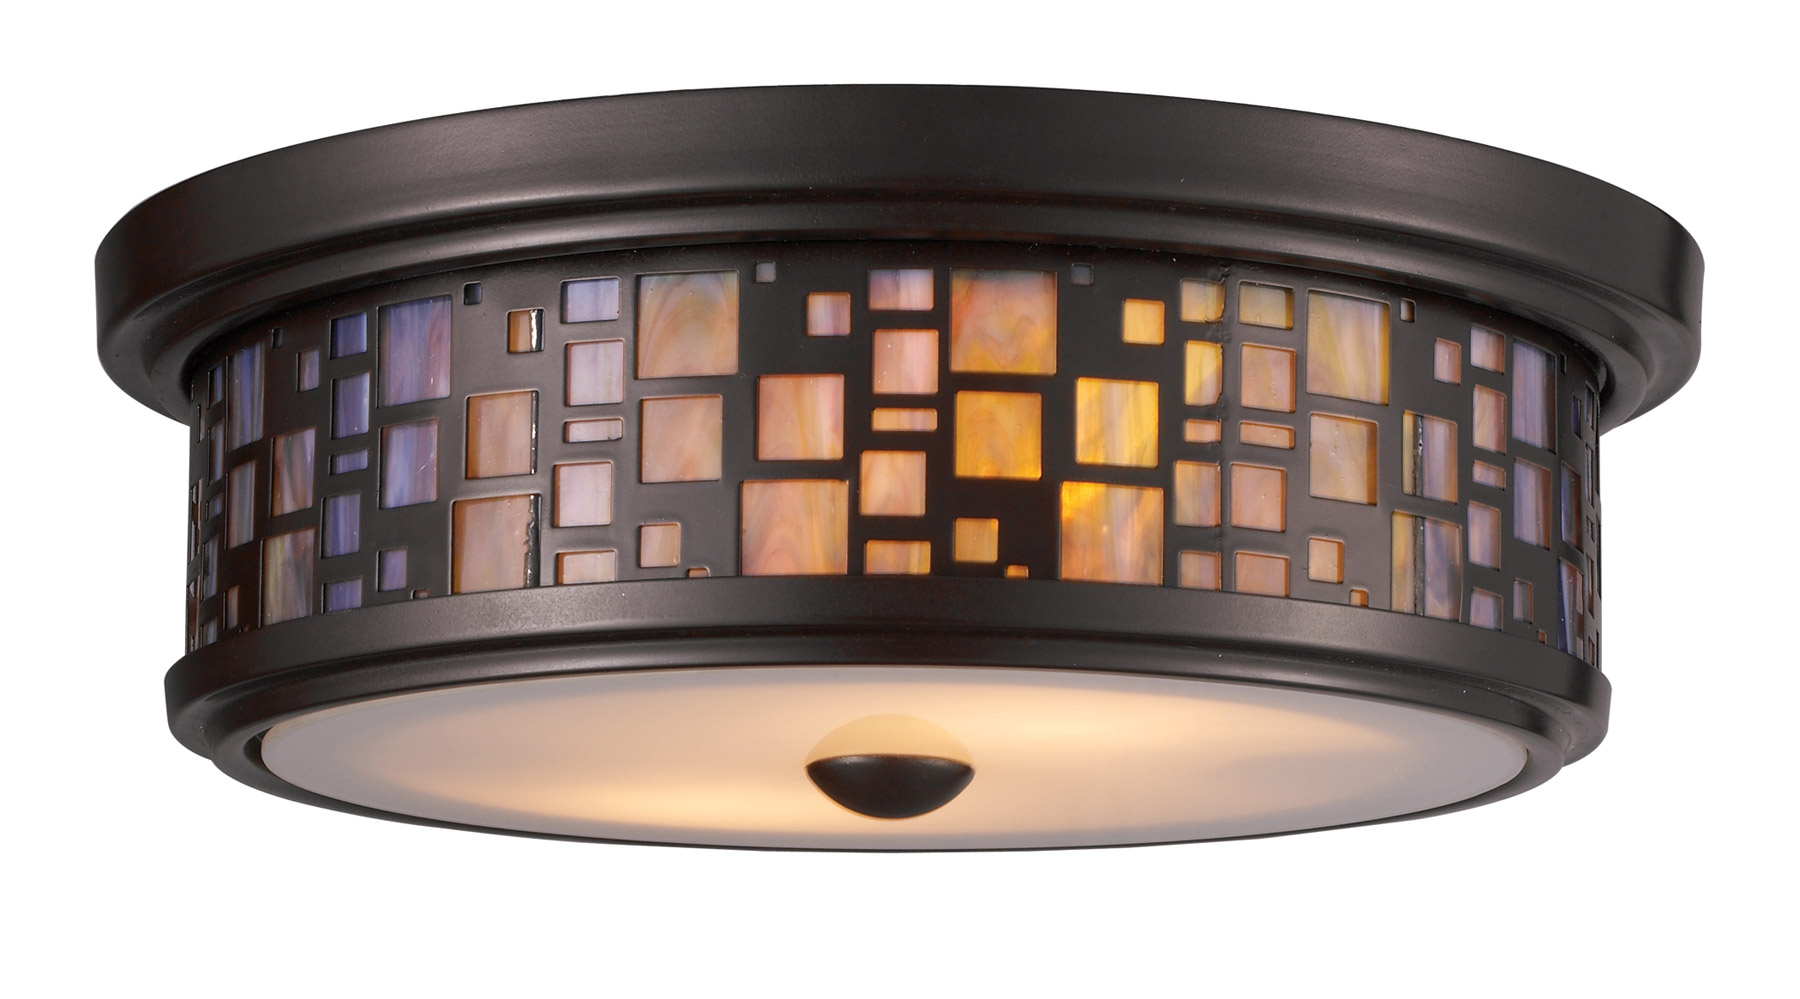 Elk Lighting 70027 2 Tiffany Flushes Flush Mount Ceiling Fixture